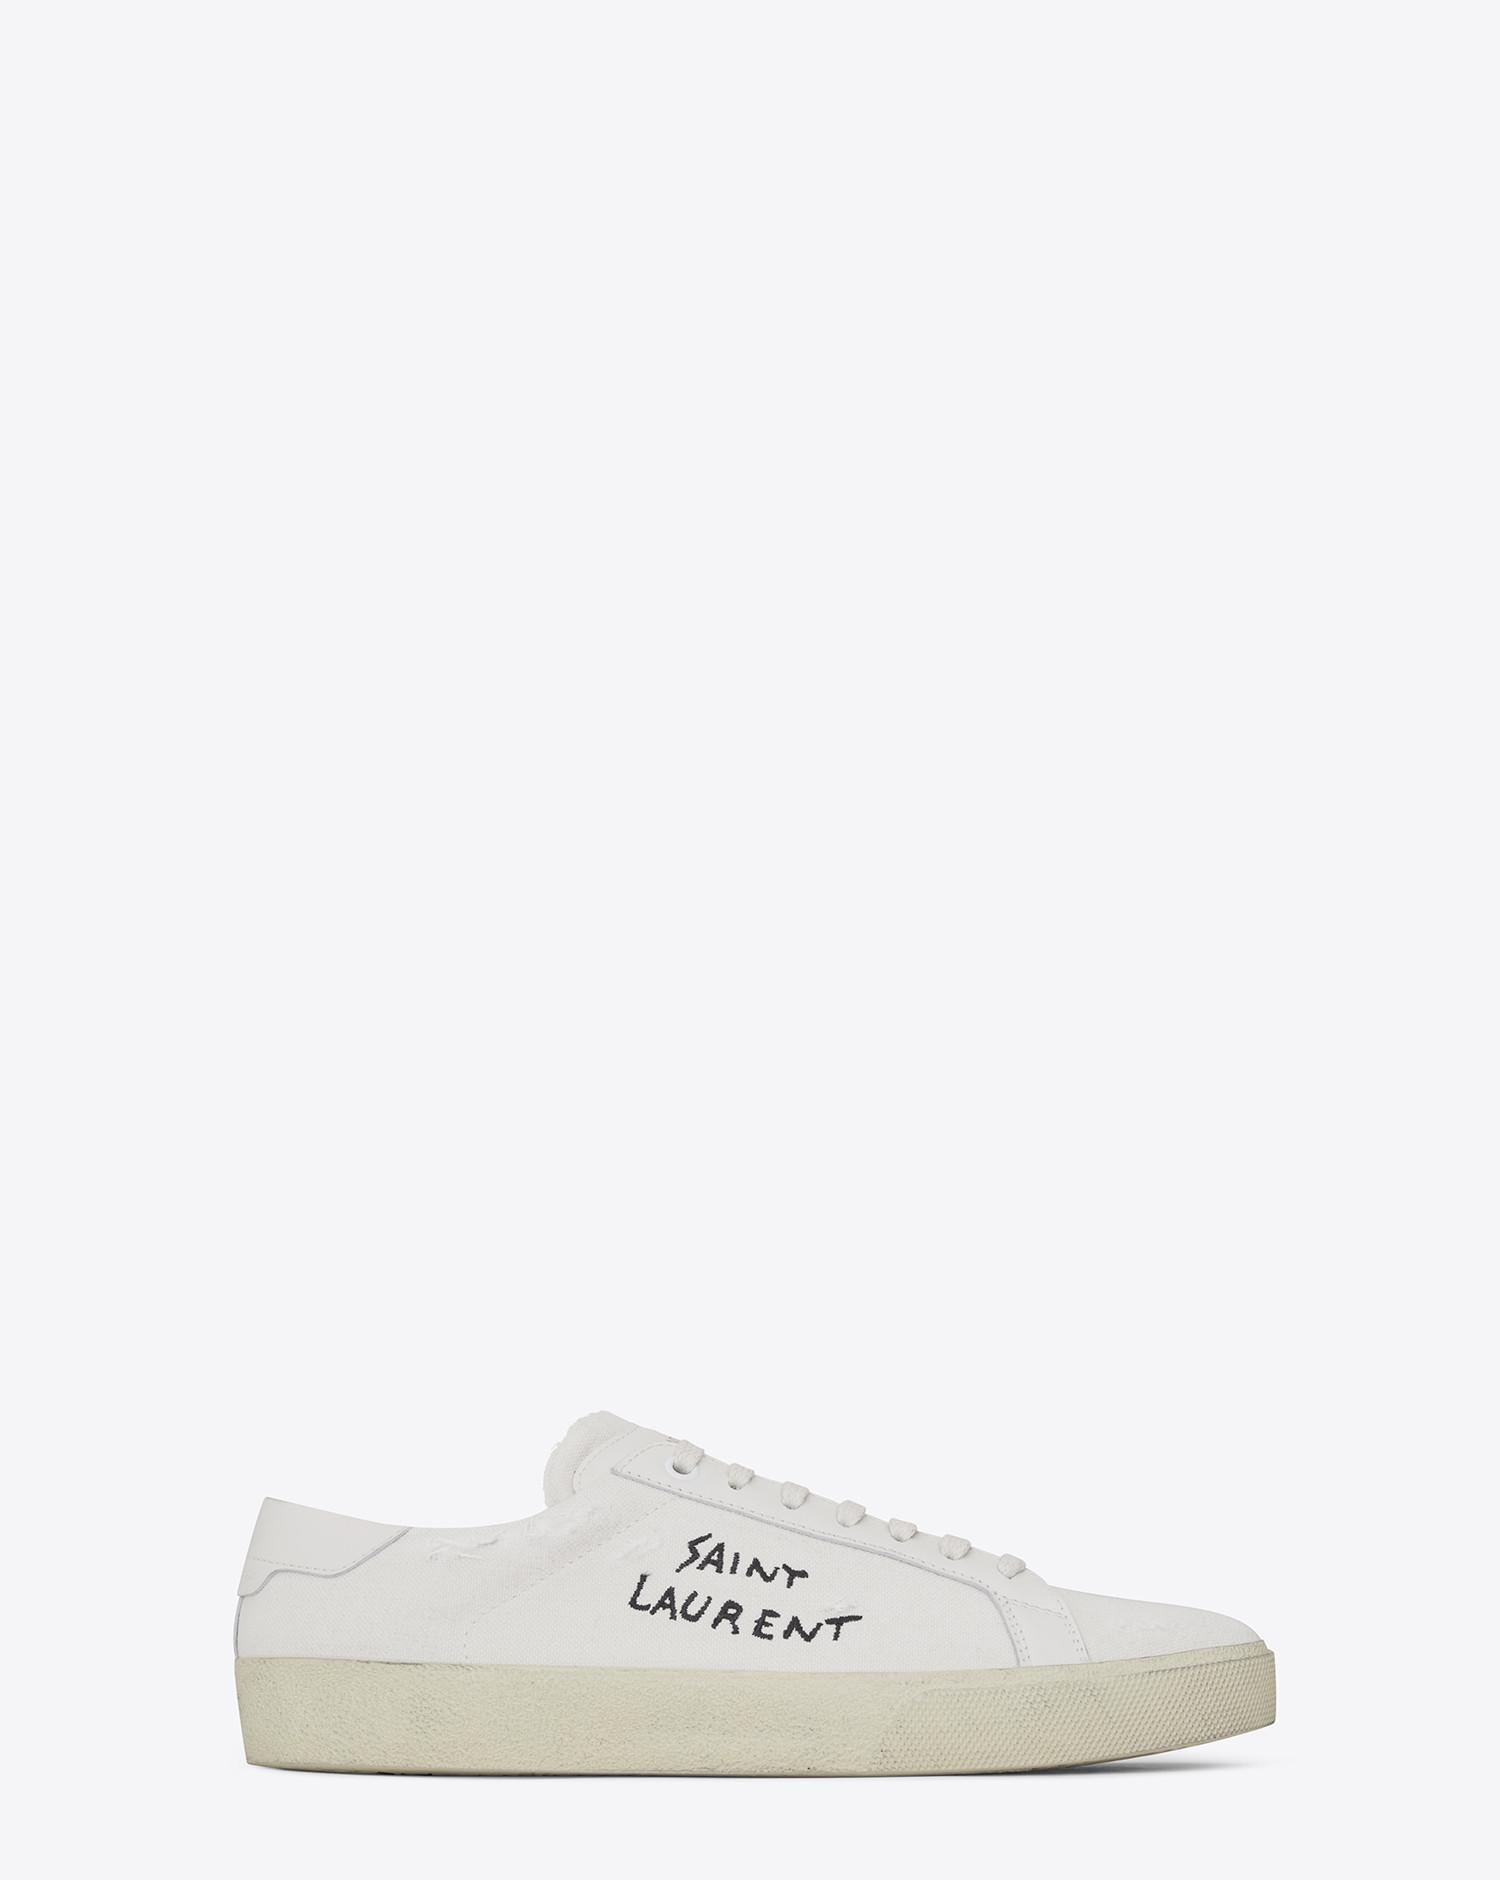 Sl/06 Court Classic Logo-embroidered Leather Sneakers Saint Laurent rcTYQV54e